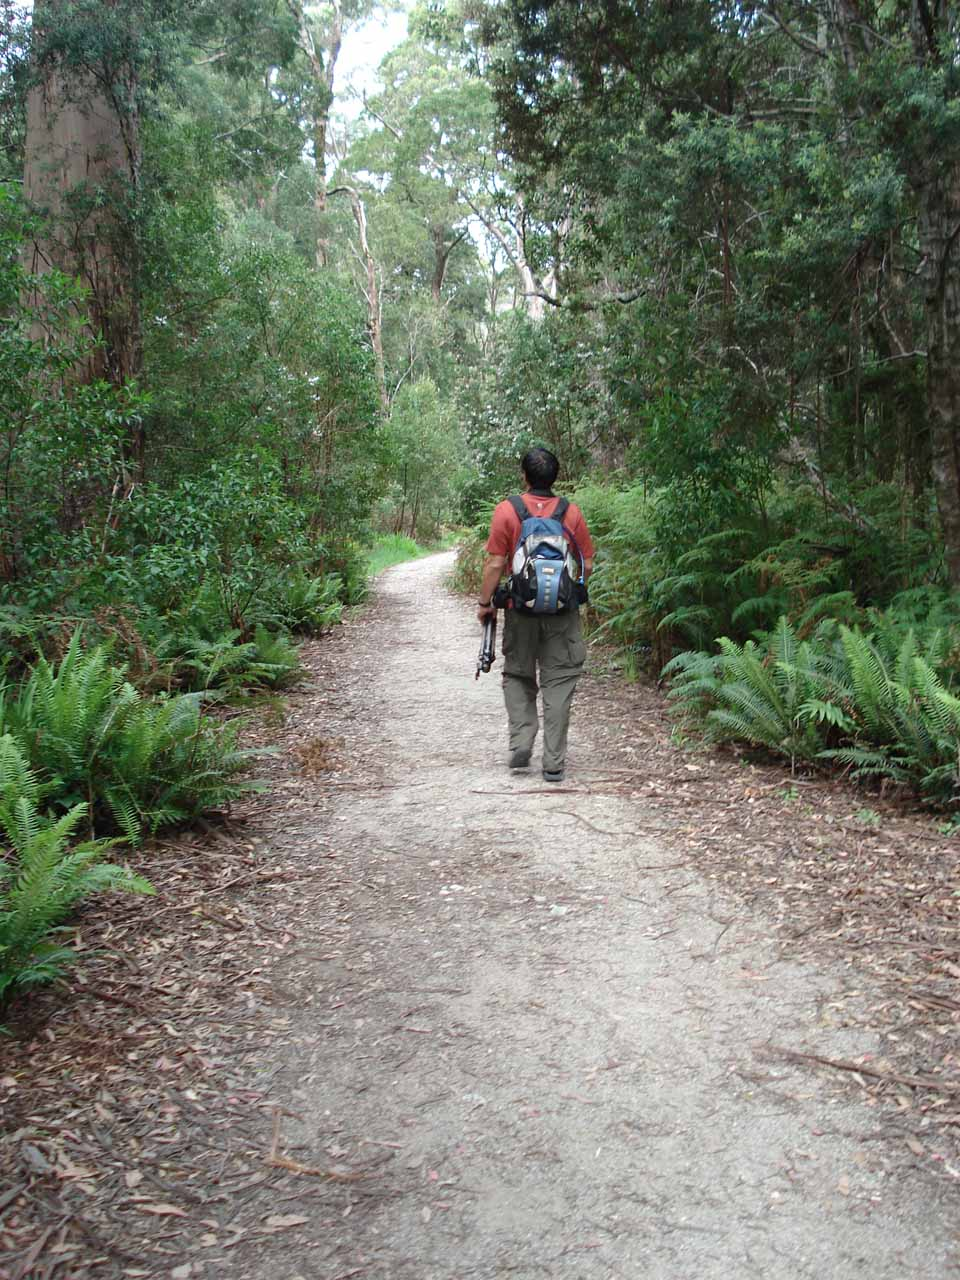 That's me on the lush forest walk towards Hogarth Falls